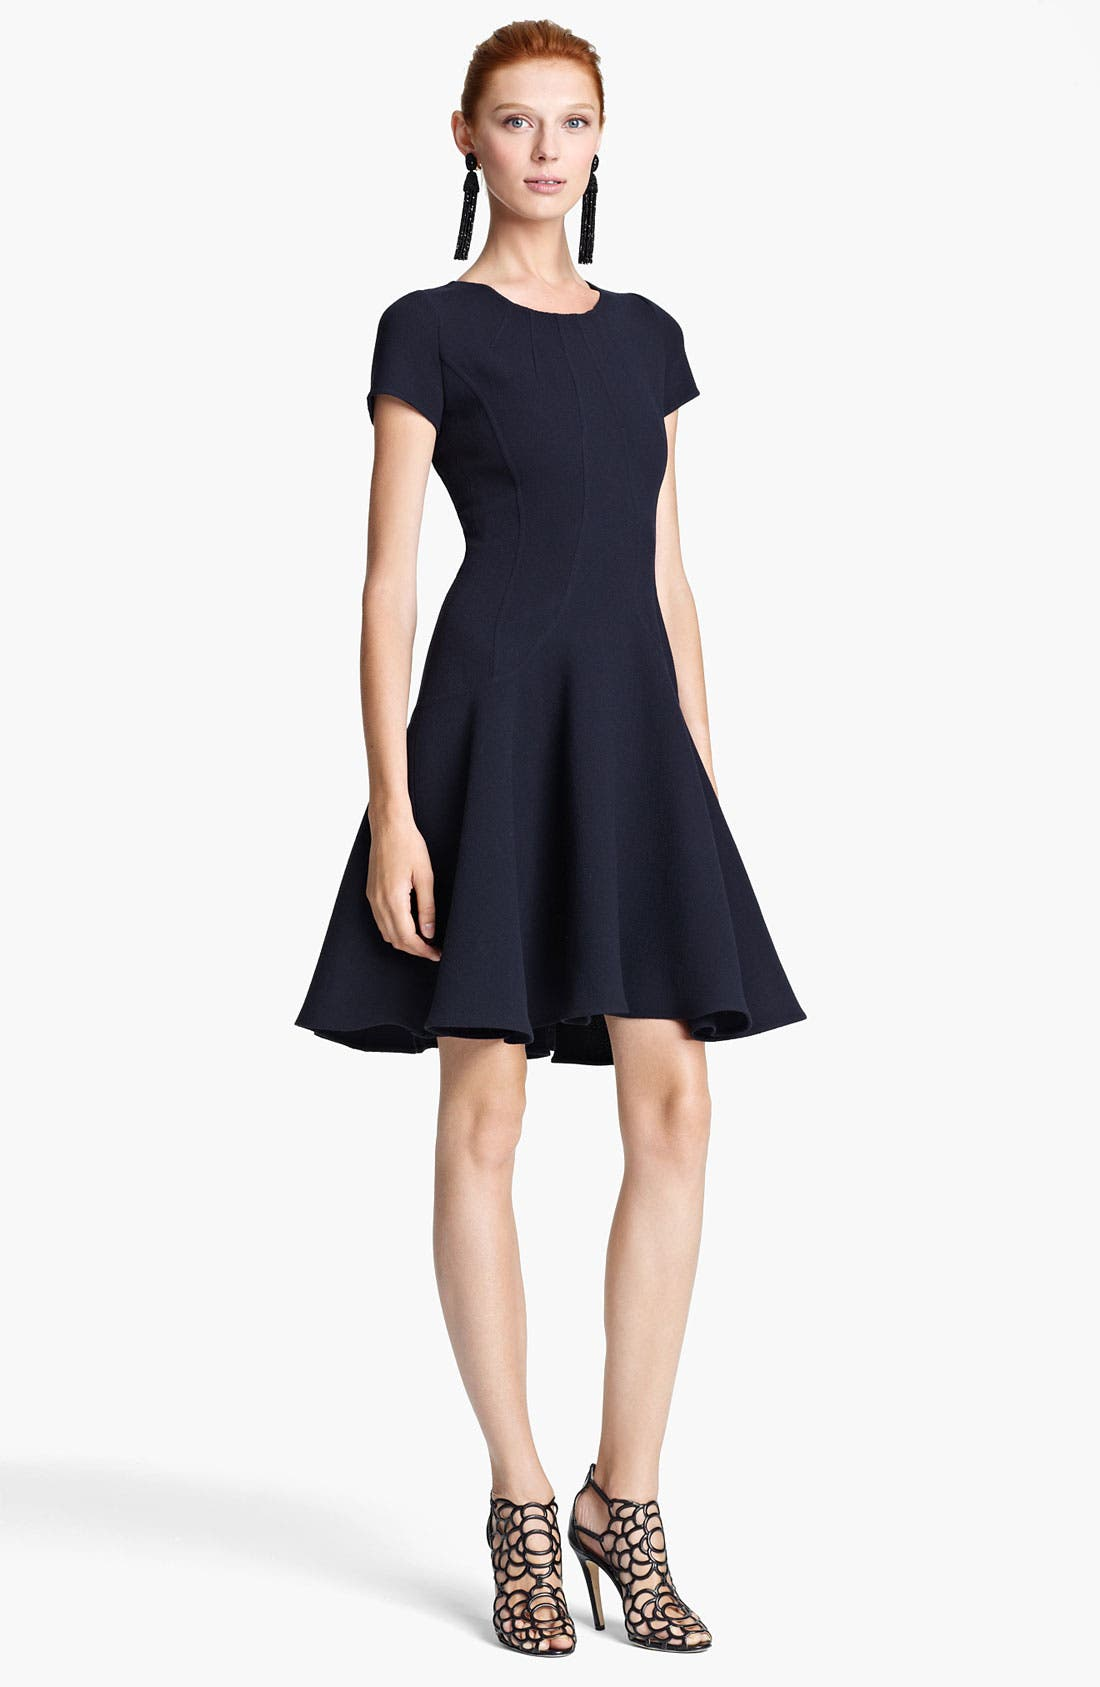 Alternate Image 1 Selected - Oscar de la Renta Wool Flounce Dress